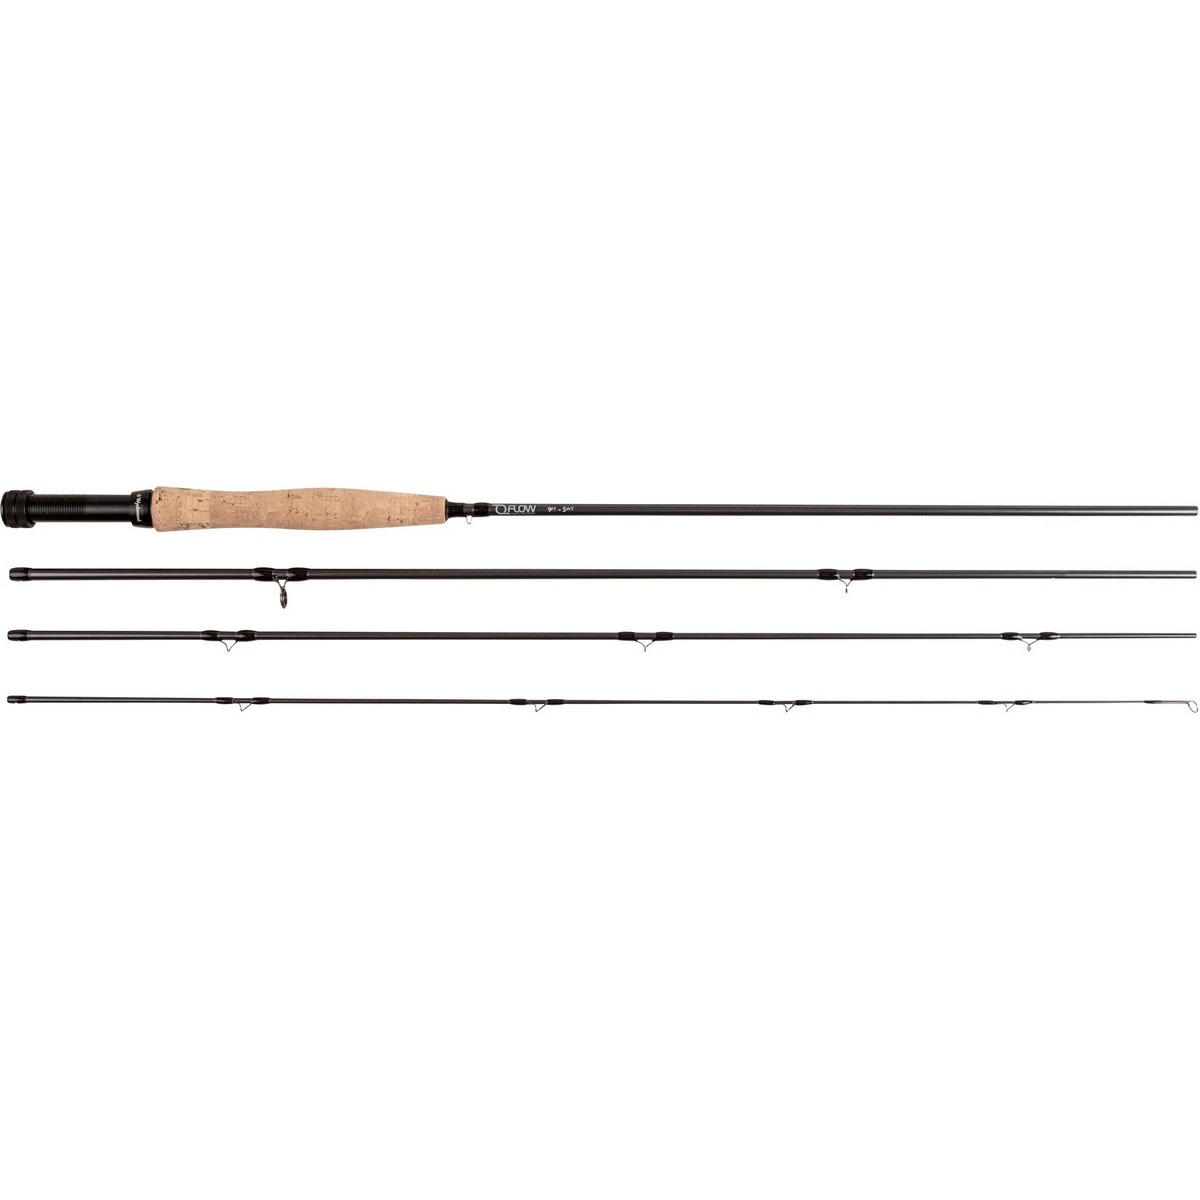 Wychwood Muškařský prut Flow Fly Rod 6ft, #3